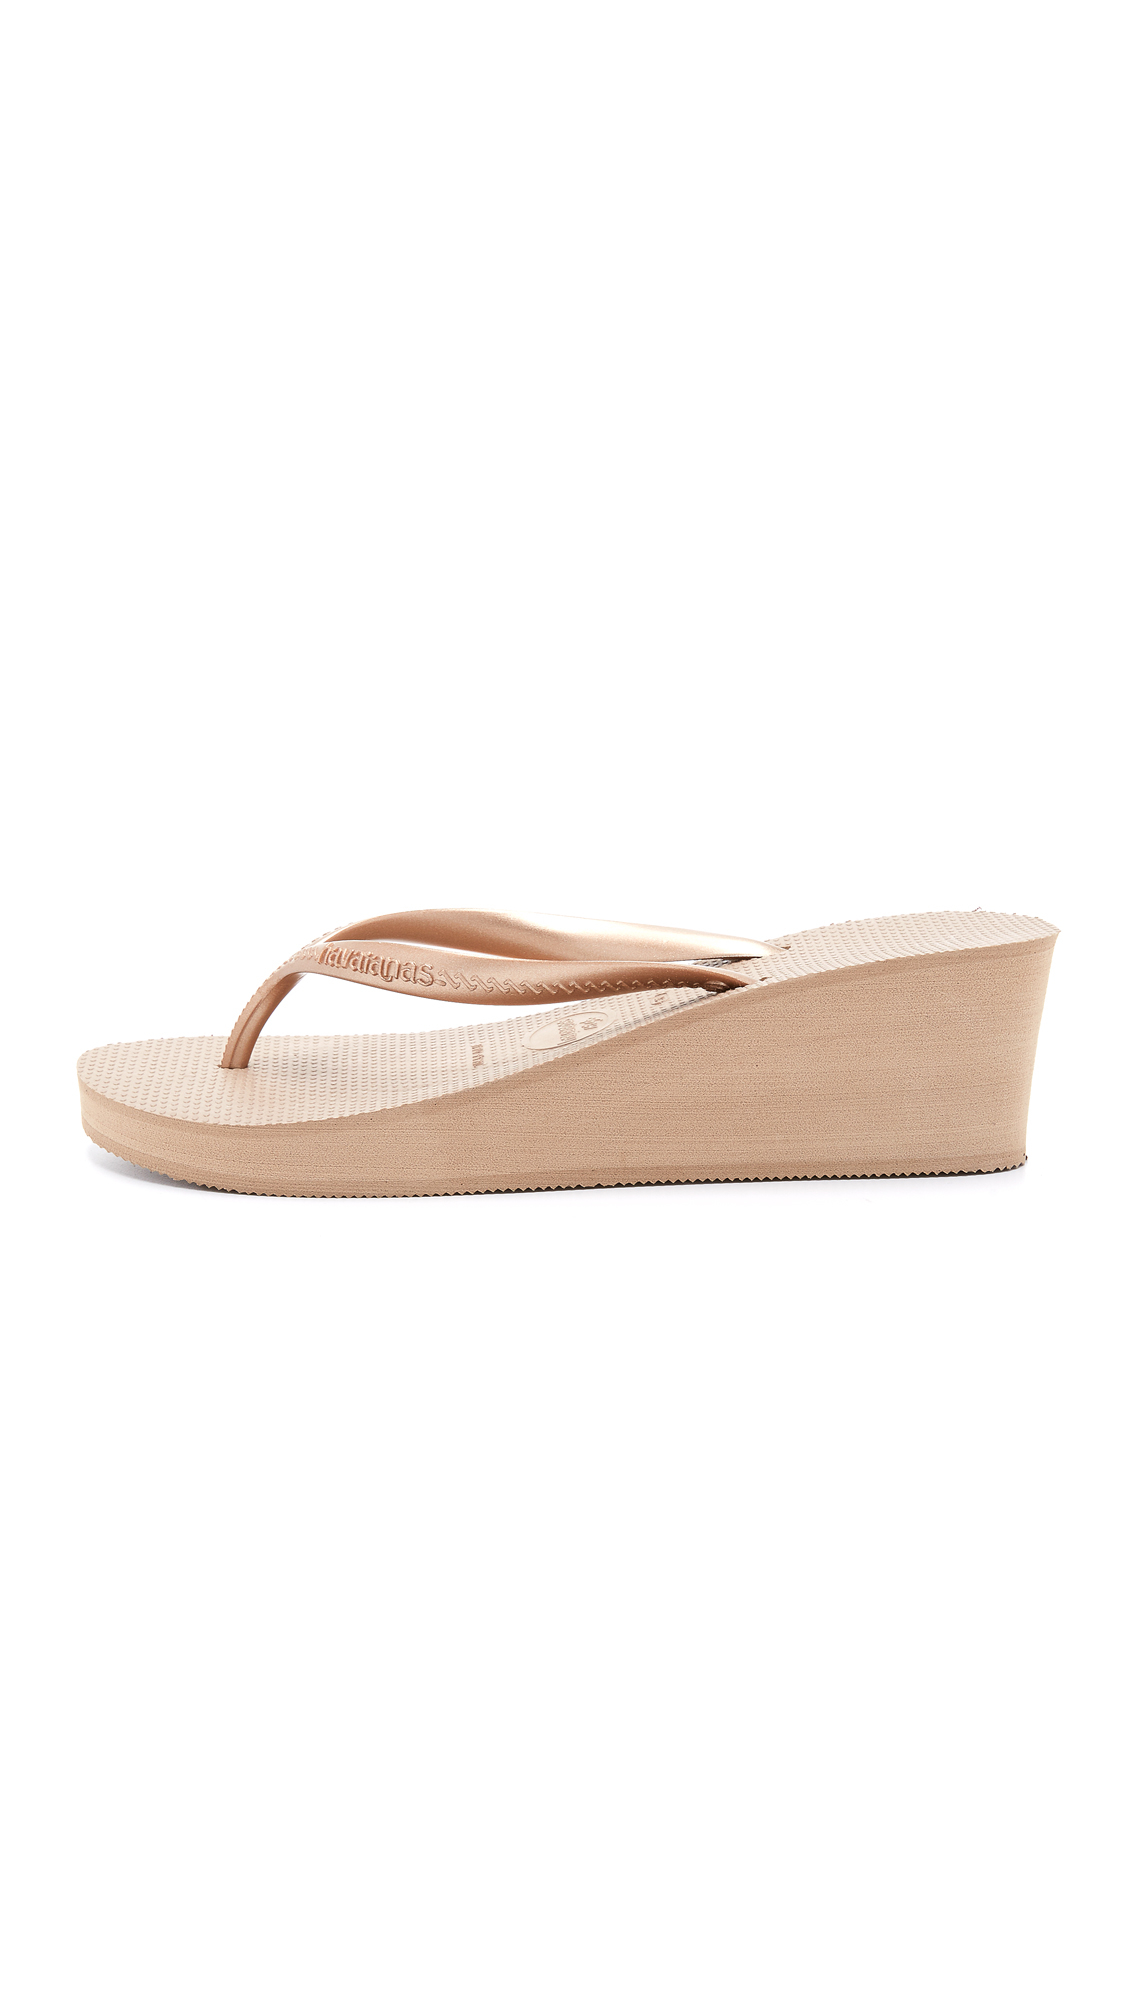 Havaianas High Fashion Wedge Sandals In Pink Lyst